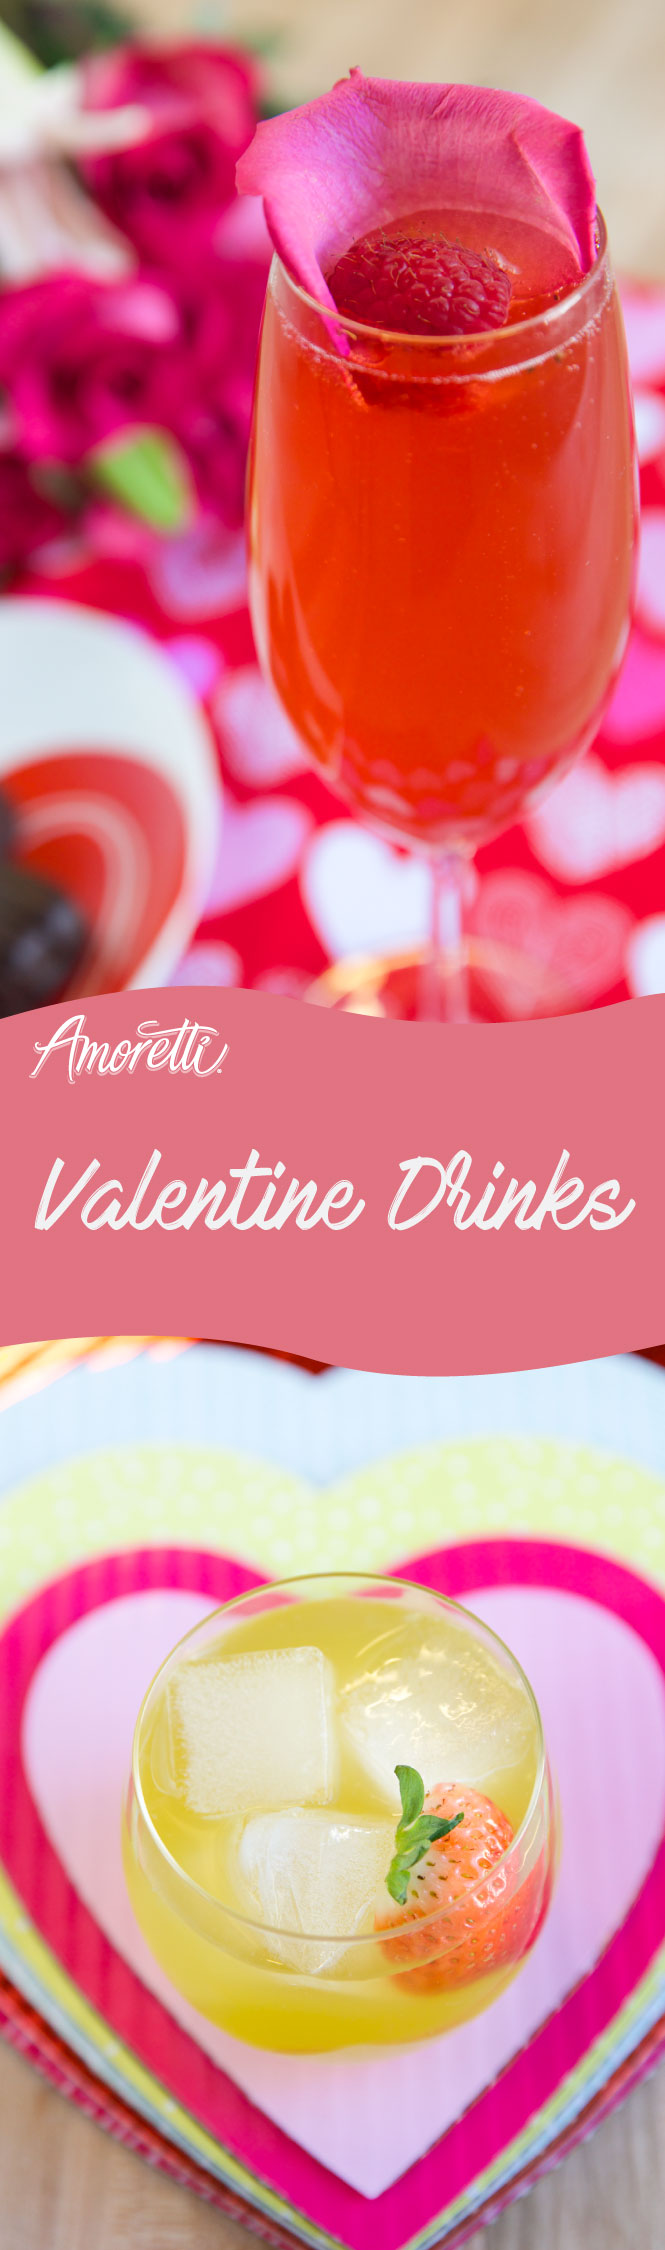 Romantic, fruity cocktails are a must for Valentine's Day!